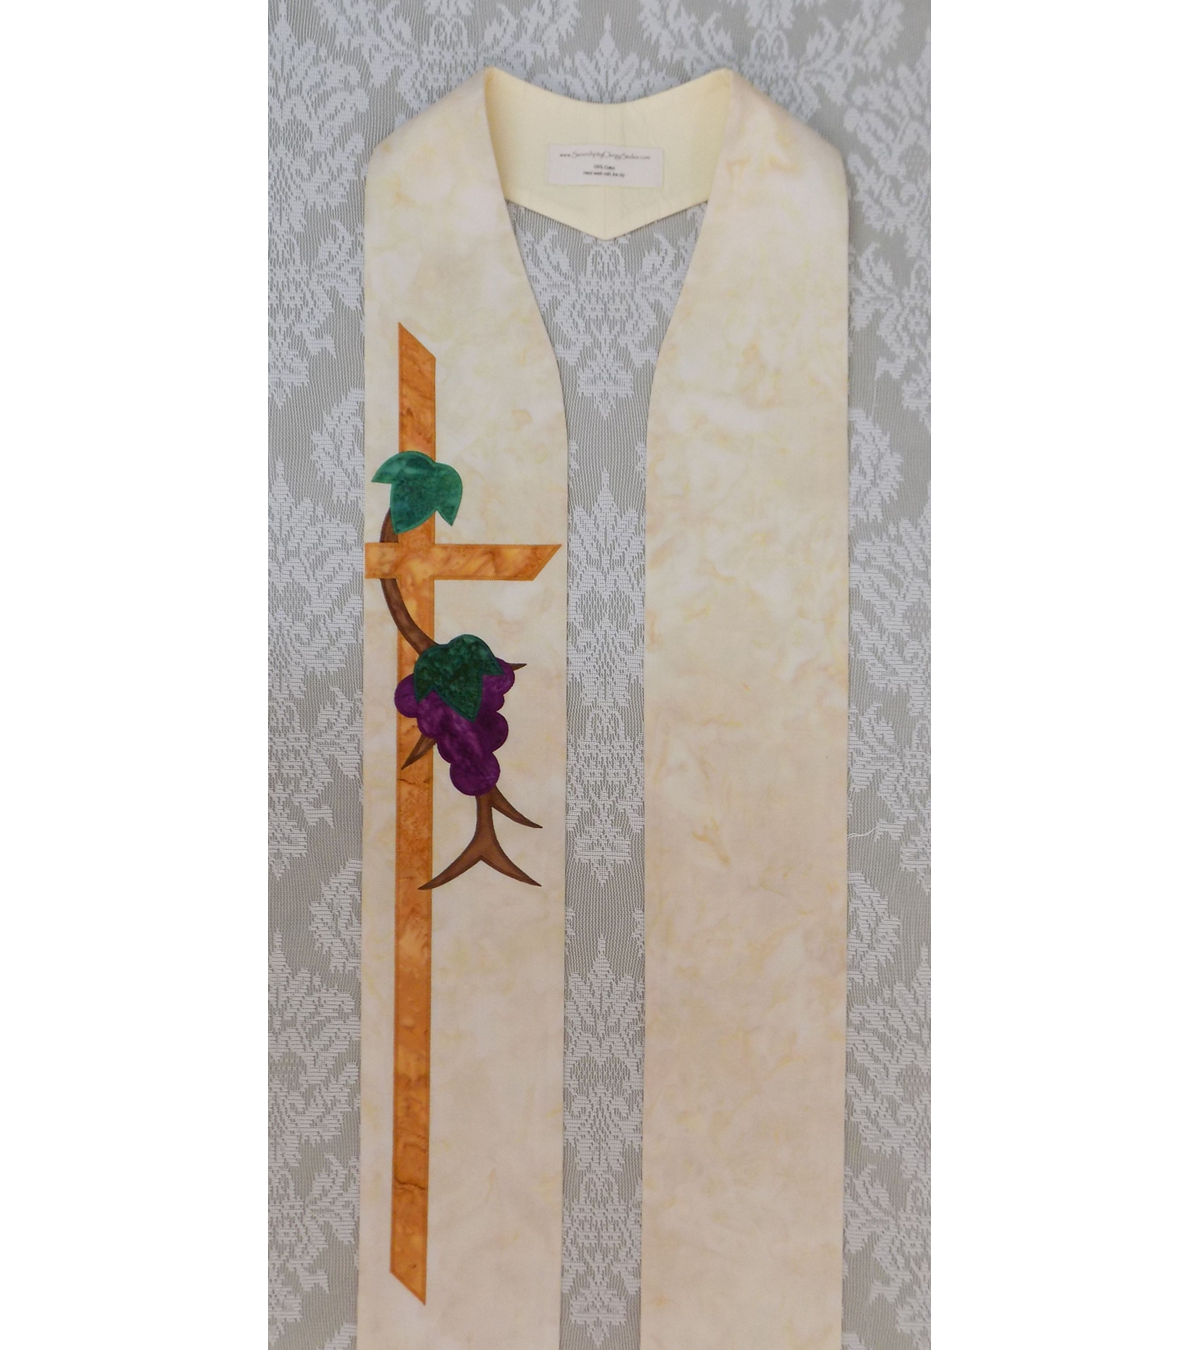 READY TO SHIP! Abide in Me: Clergy Stole with Simplified Grapevine Design